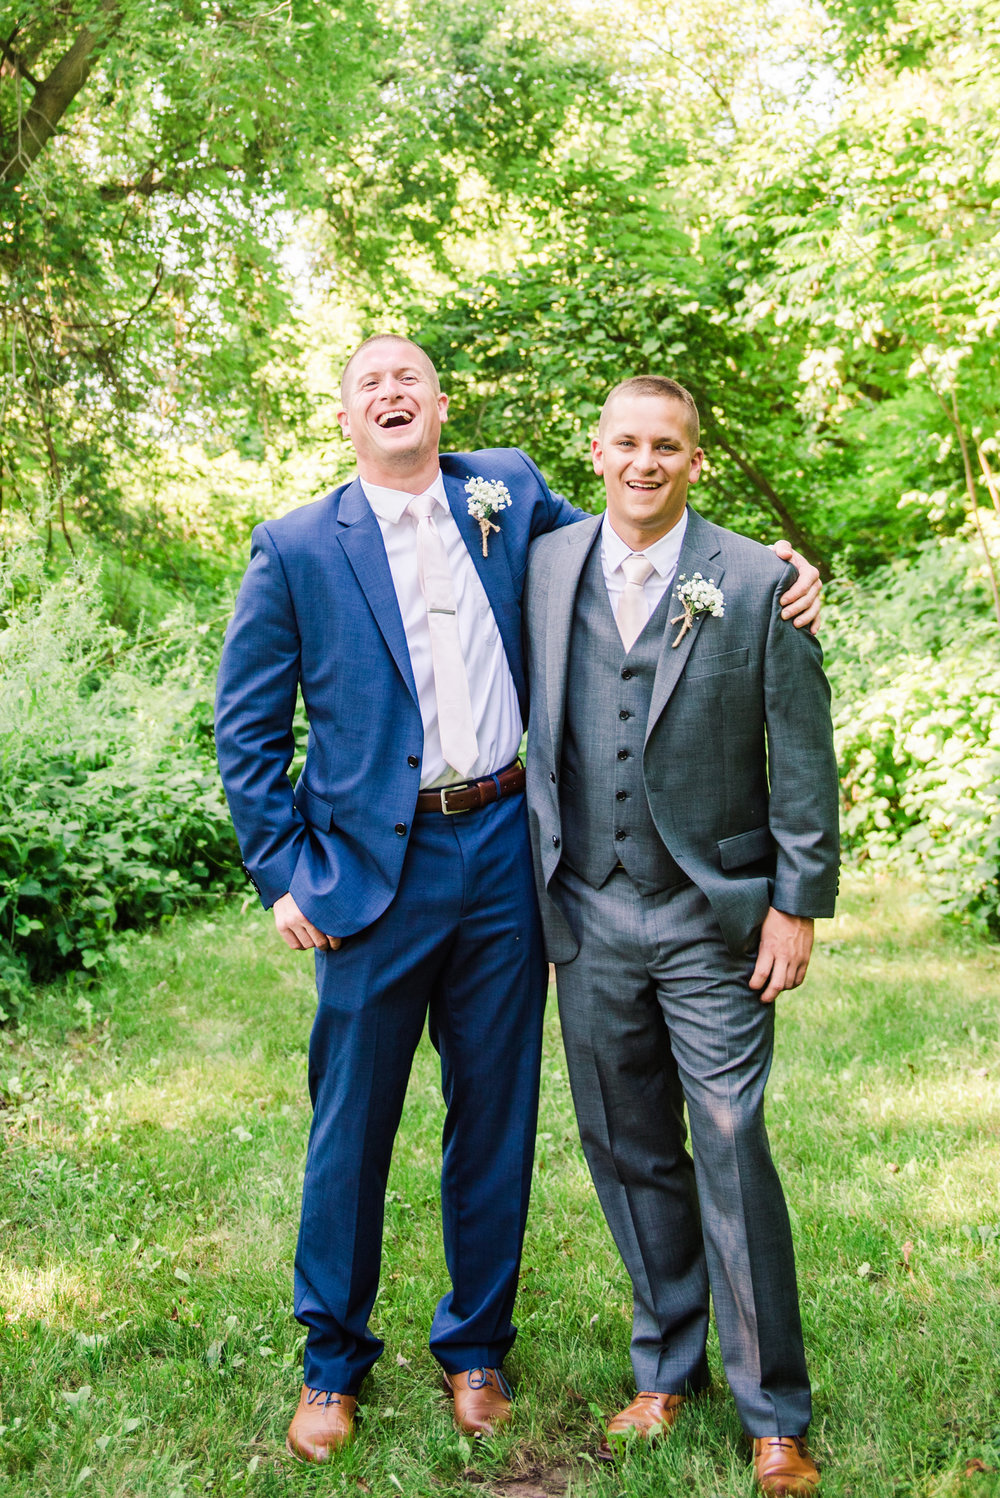 Wolf_Oak_Acres_Central_NY_Wedding_JILL_STUDIO_Rochester_NY_Photographer_DSC_5103.jpg